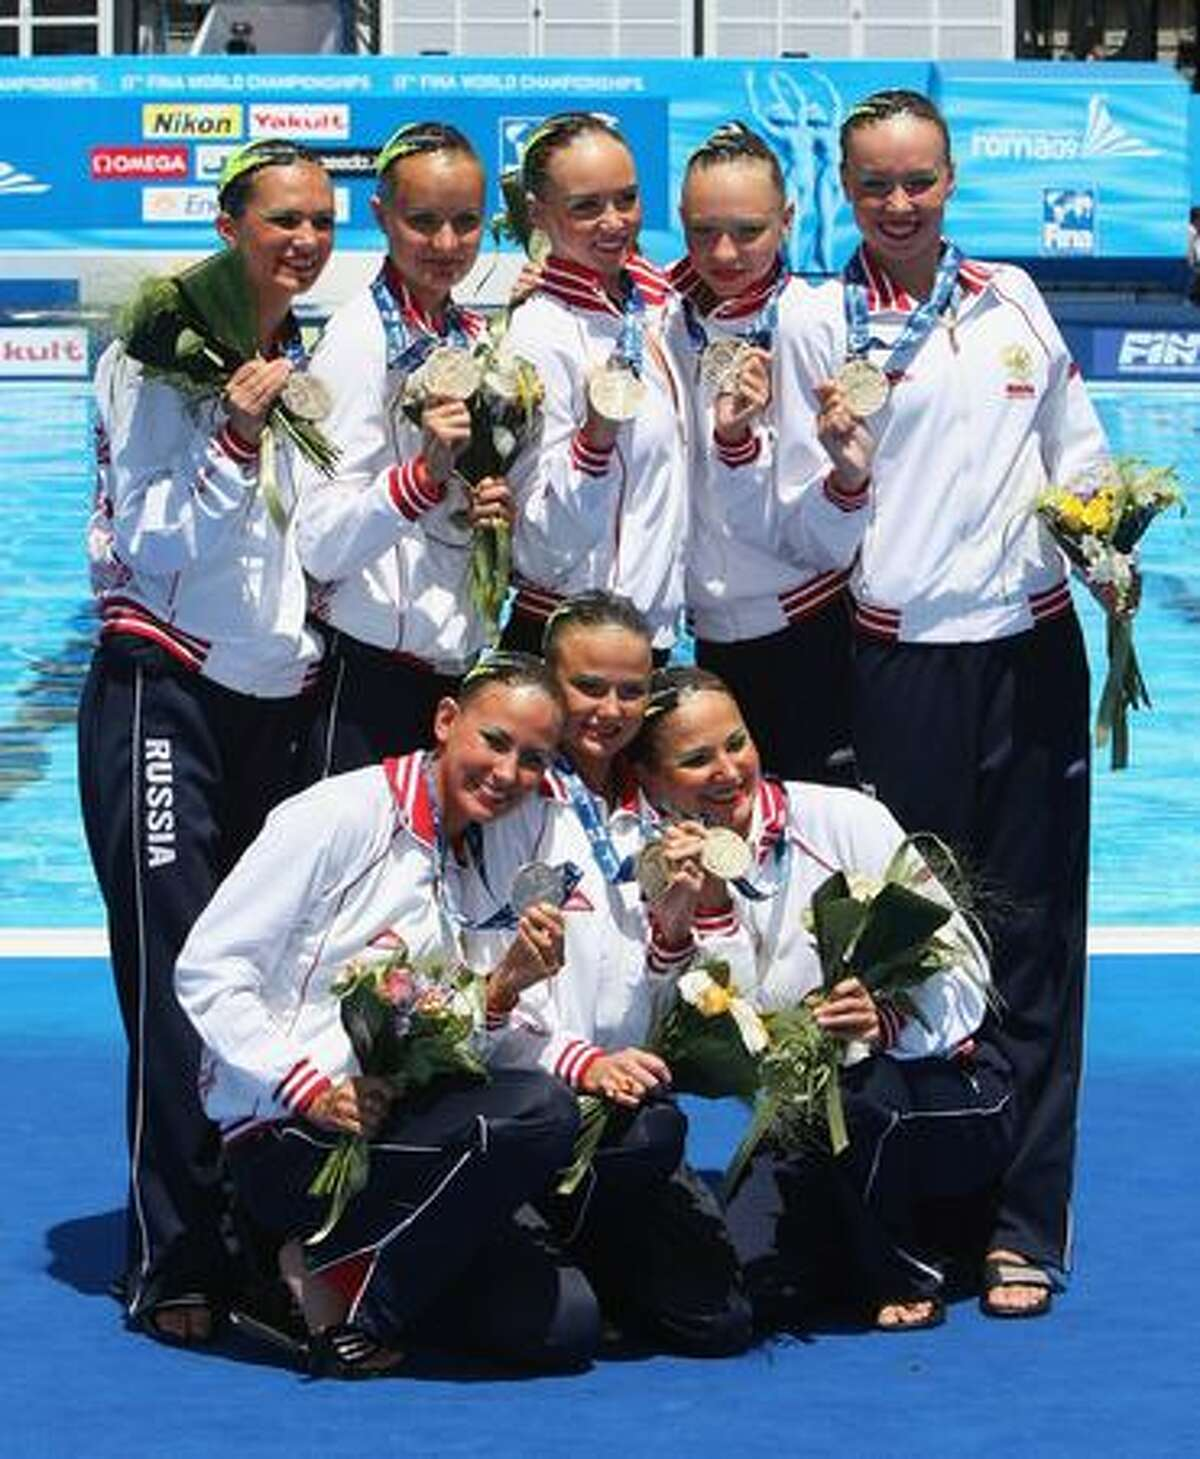 Team Russia celebrate winning Gold after the Womens Synchronised Swimming Team Technical Final at the Stadio del Nuoto Sincronizzato on Sunday in Rome, Italy.